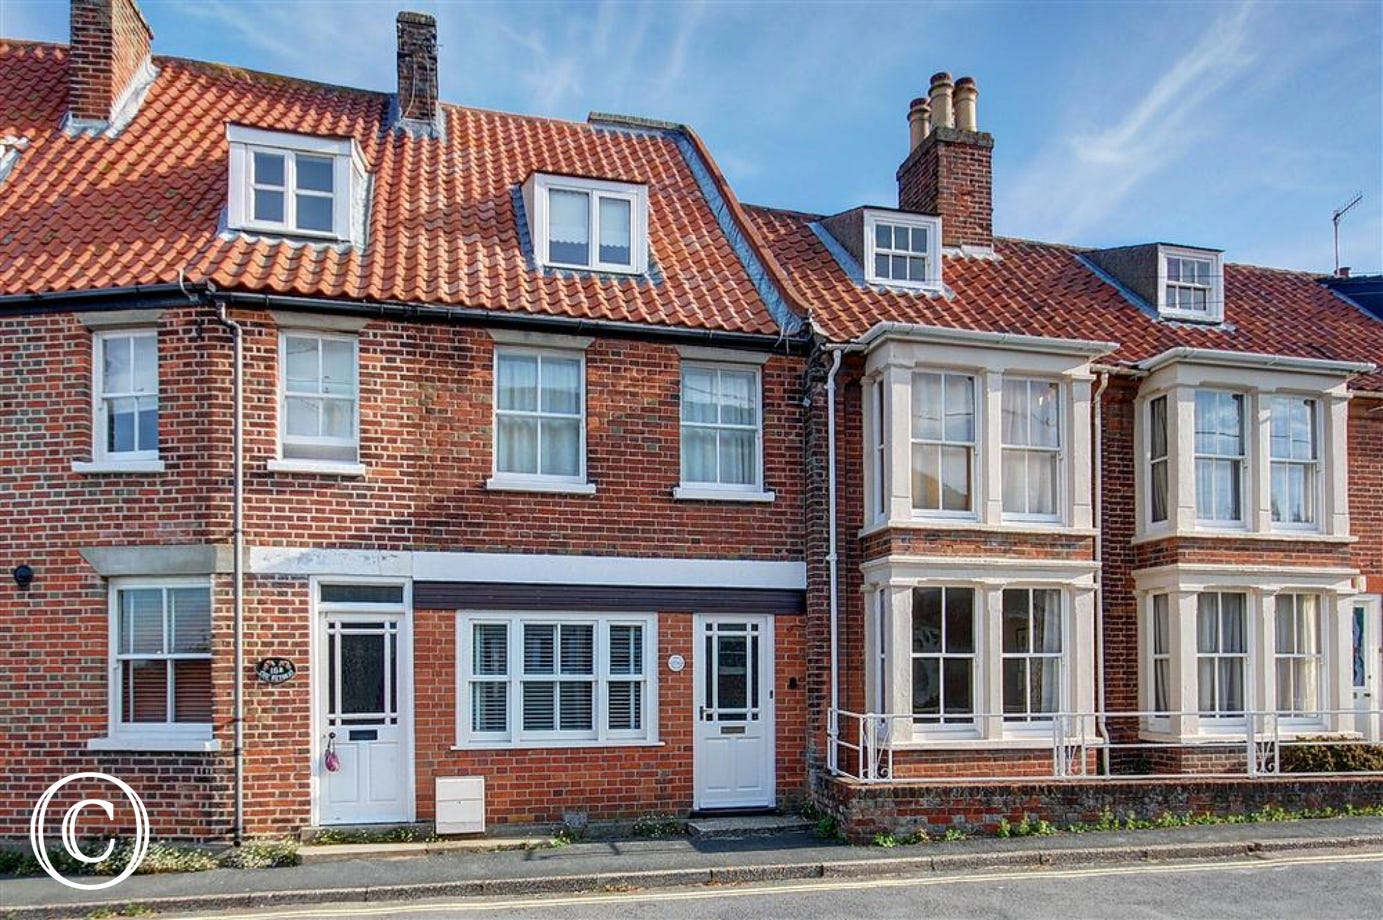 Ivy Cottage is a charming 7 person property situated in the stunning coastal town of Southwold.